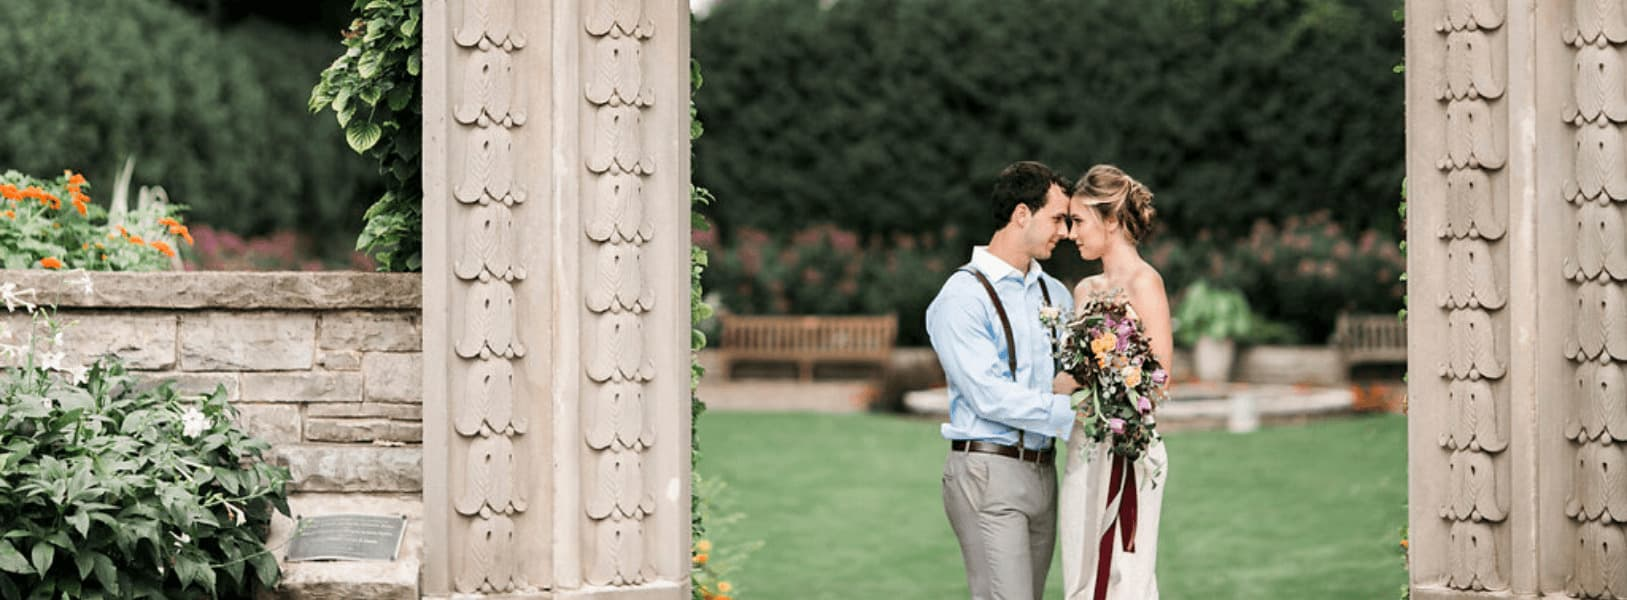 Newly married couple embraces in the Sunken Garden